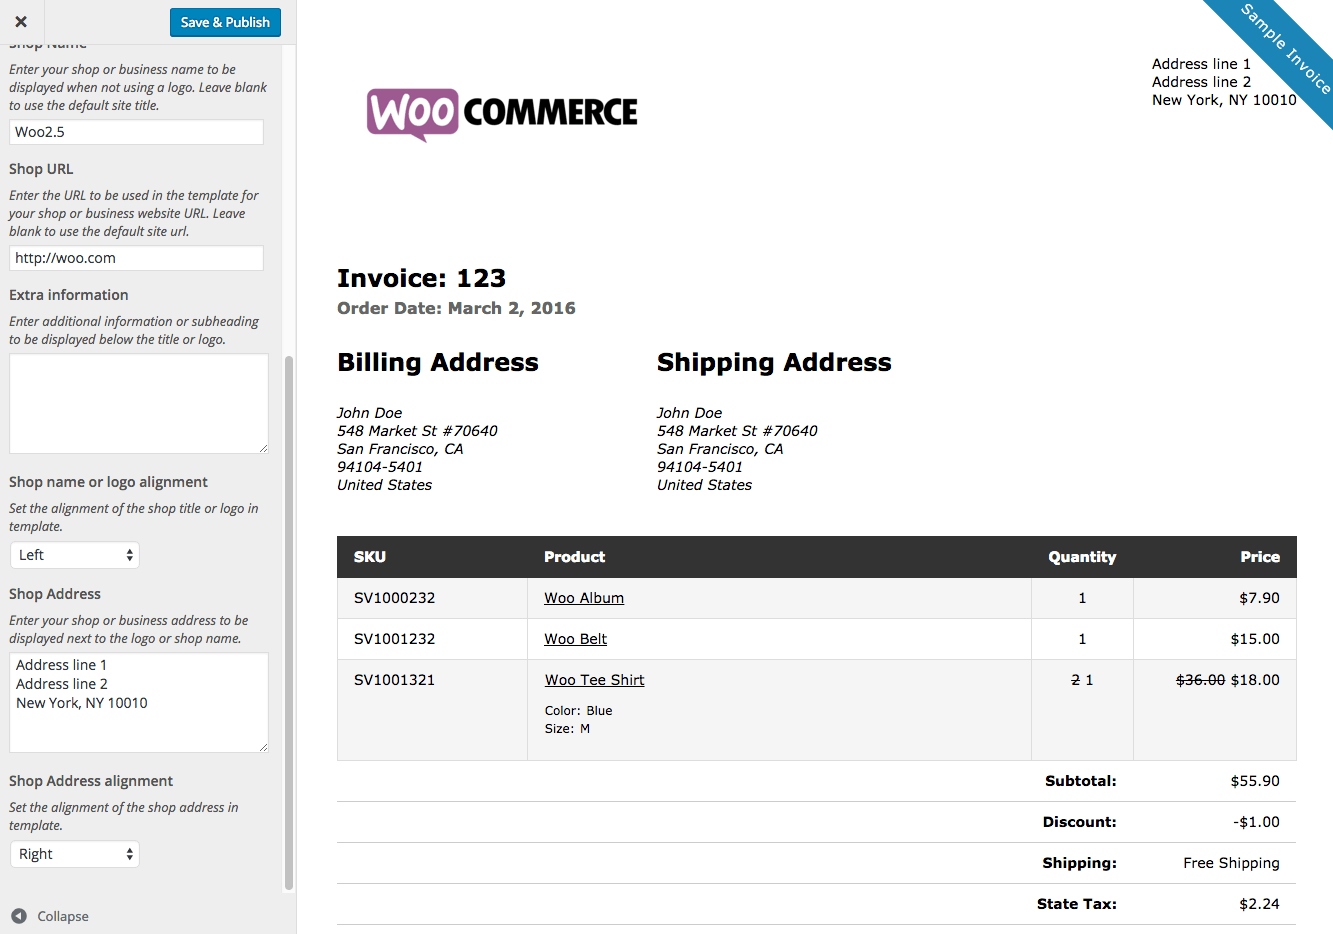 Darkfaderus  Splendid Woocommerce Print Invoices Amp Packing Lists  Woocommerce Docs With Licious Woocommerce Print Invoices  Packing Lists Customizer With Agreeable Ms Word Invoice Template Mac Also Foc Invoice In Addition Actual Invoice And What Does Proforma Invoice Mean As Well As Rogers Invoice Online Additionally Citylink Late Toll Invoice Cost From Docswoocommercecom With Darkfaderus  Licious Woocommerce Print Invoices Amp Packing Lists  Woocommerce Docs With Agreeable Woocommerce Print Invoices  Packing Lists Customizer And Splendid Ms Word Invoice Template Mac Also Foc Invoice In Addition Actual Invoice From Docswoocommercecom